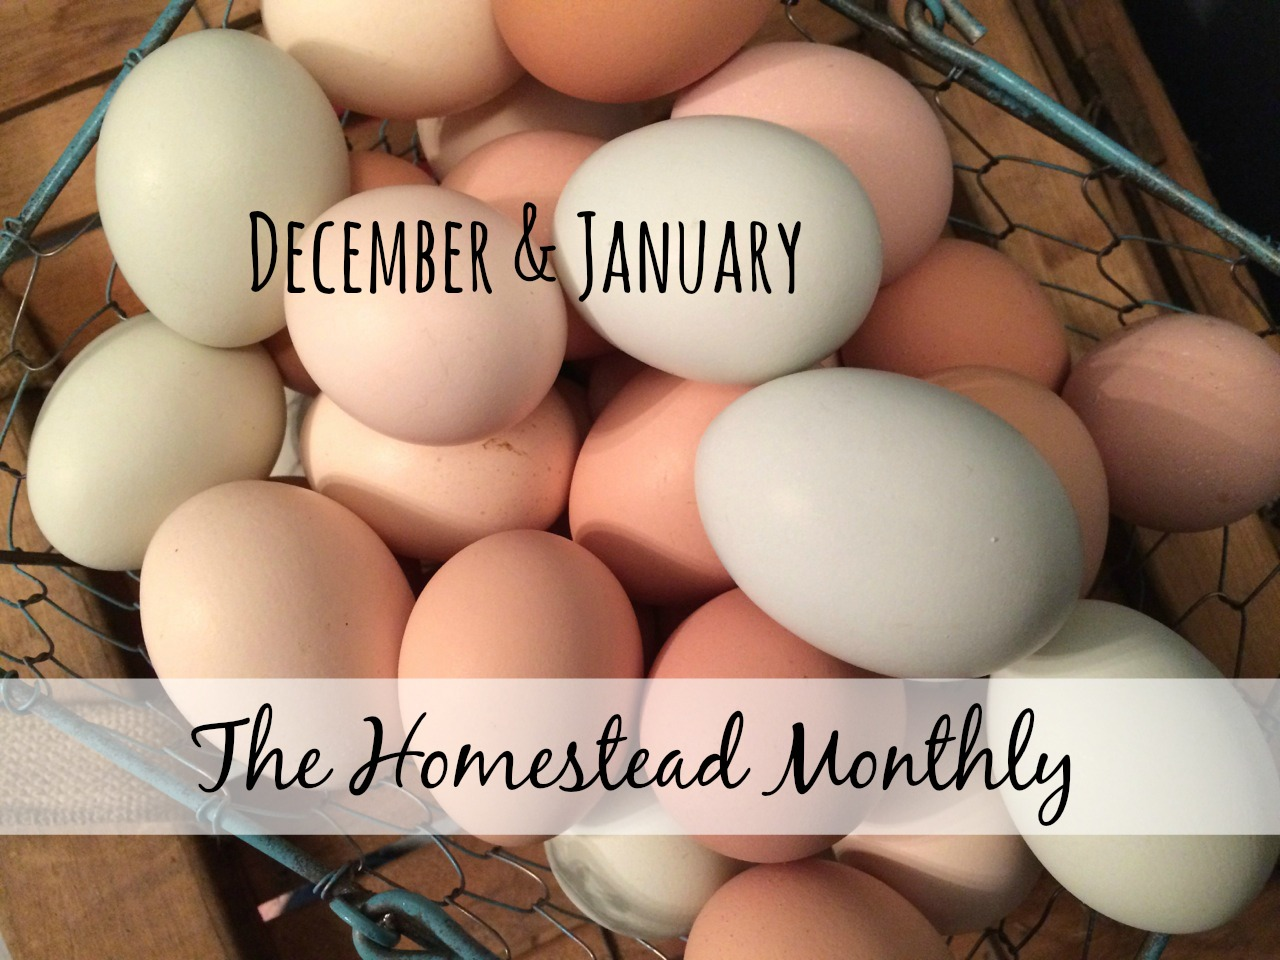 The Homestead Monthly: December & January